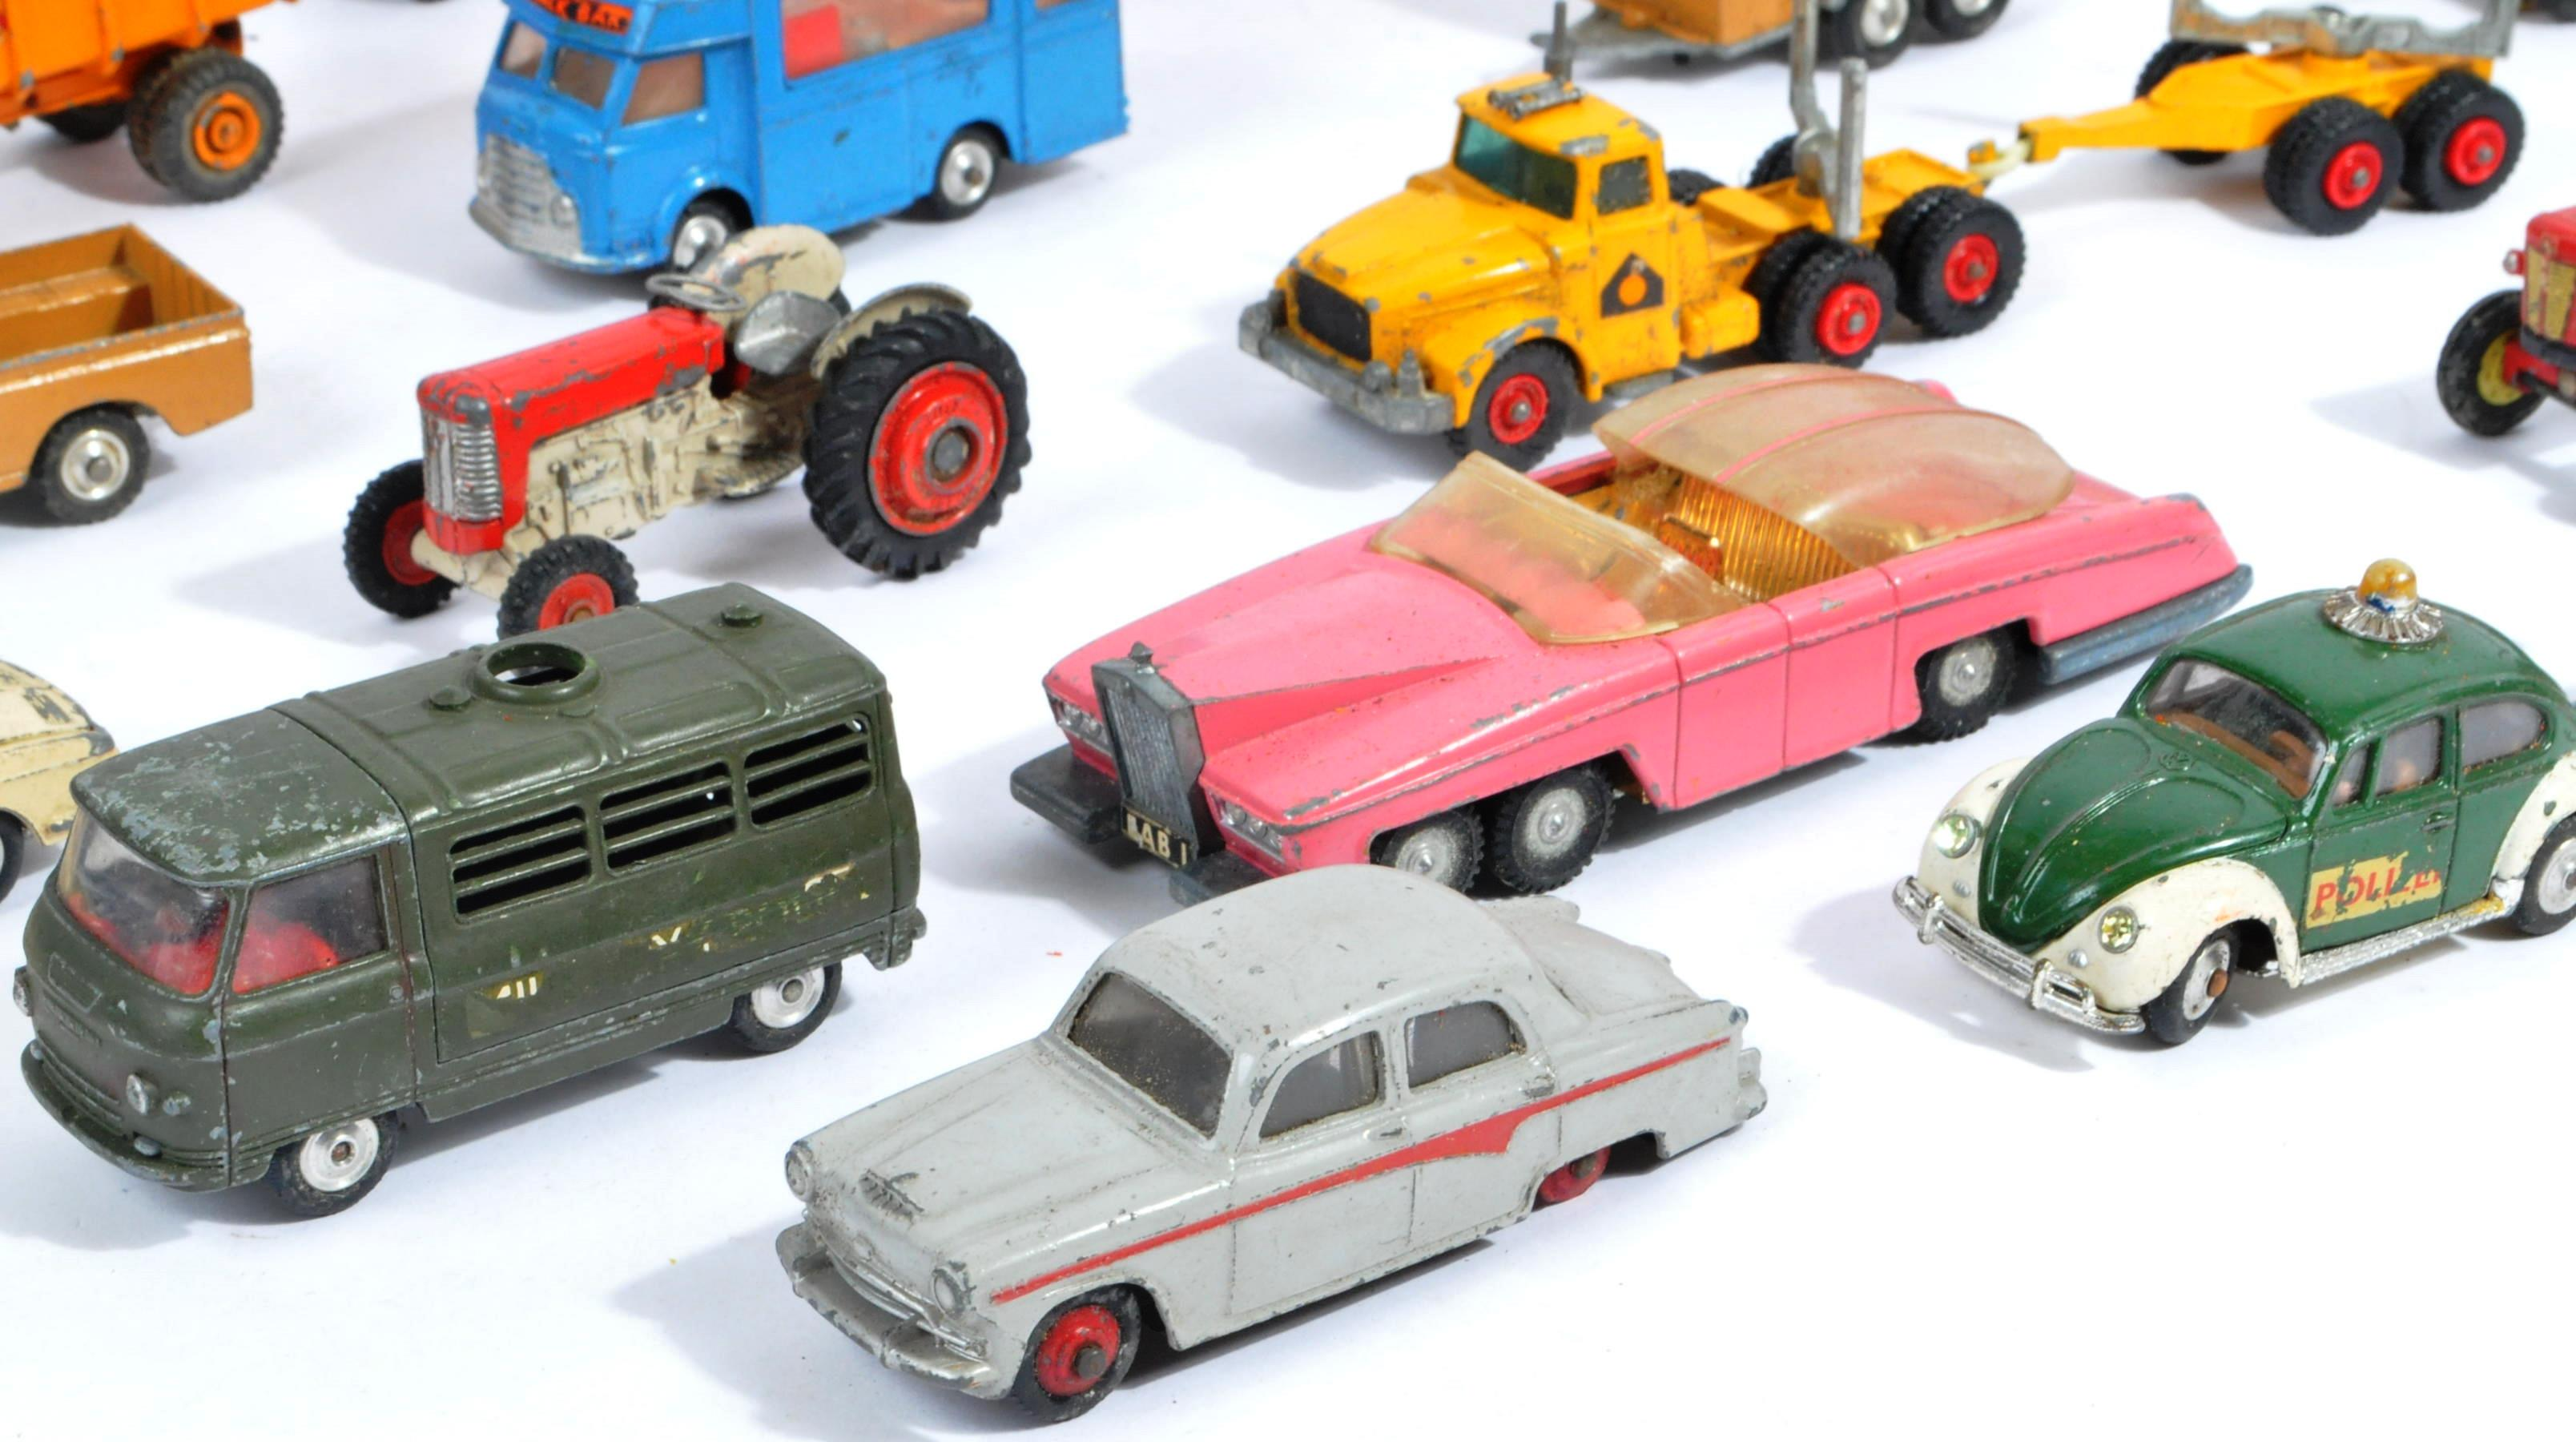 COLLECTION OF VINTAGE CORGI & DINKY TOYS DIECAST MODELS - Image 7 of 10